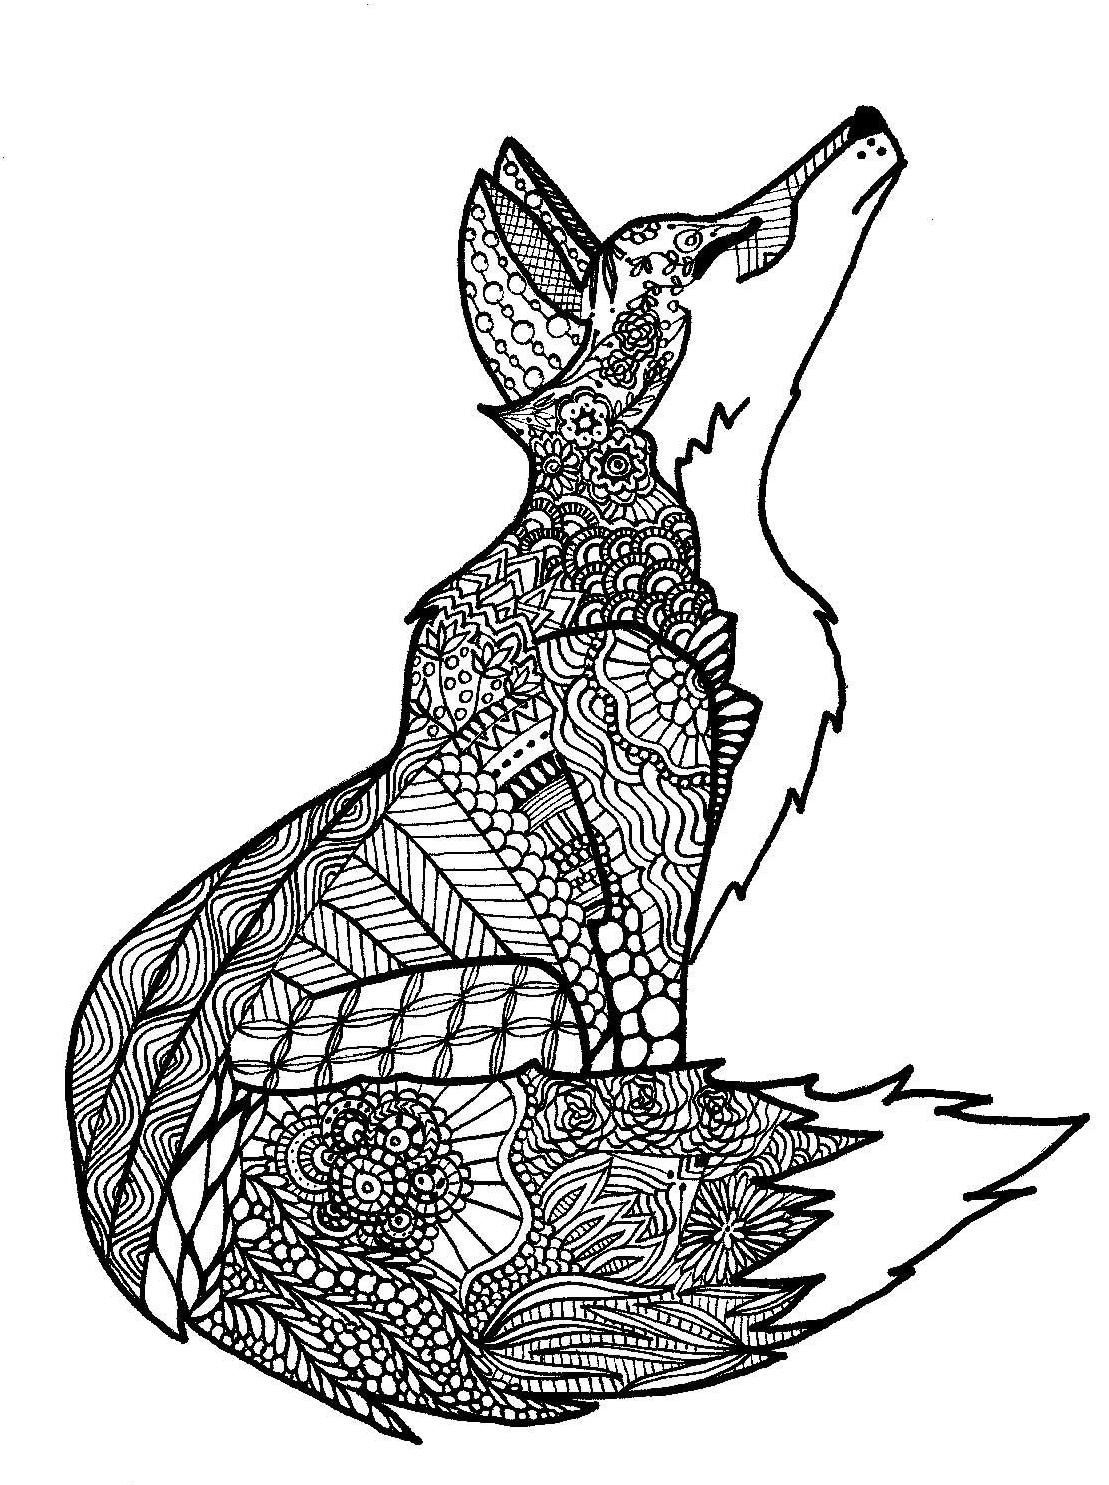 Kearney woman 39 s Zentangle coloring book stems from her